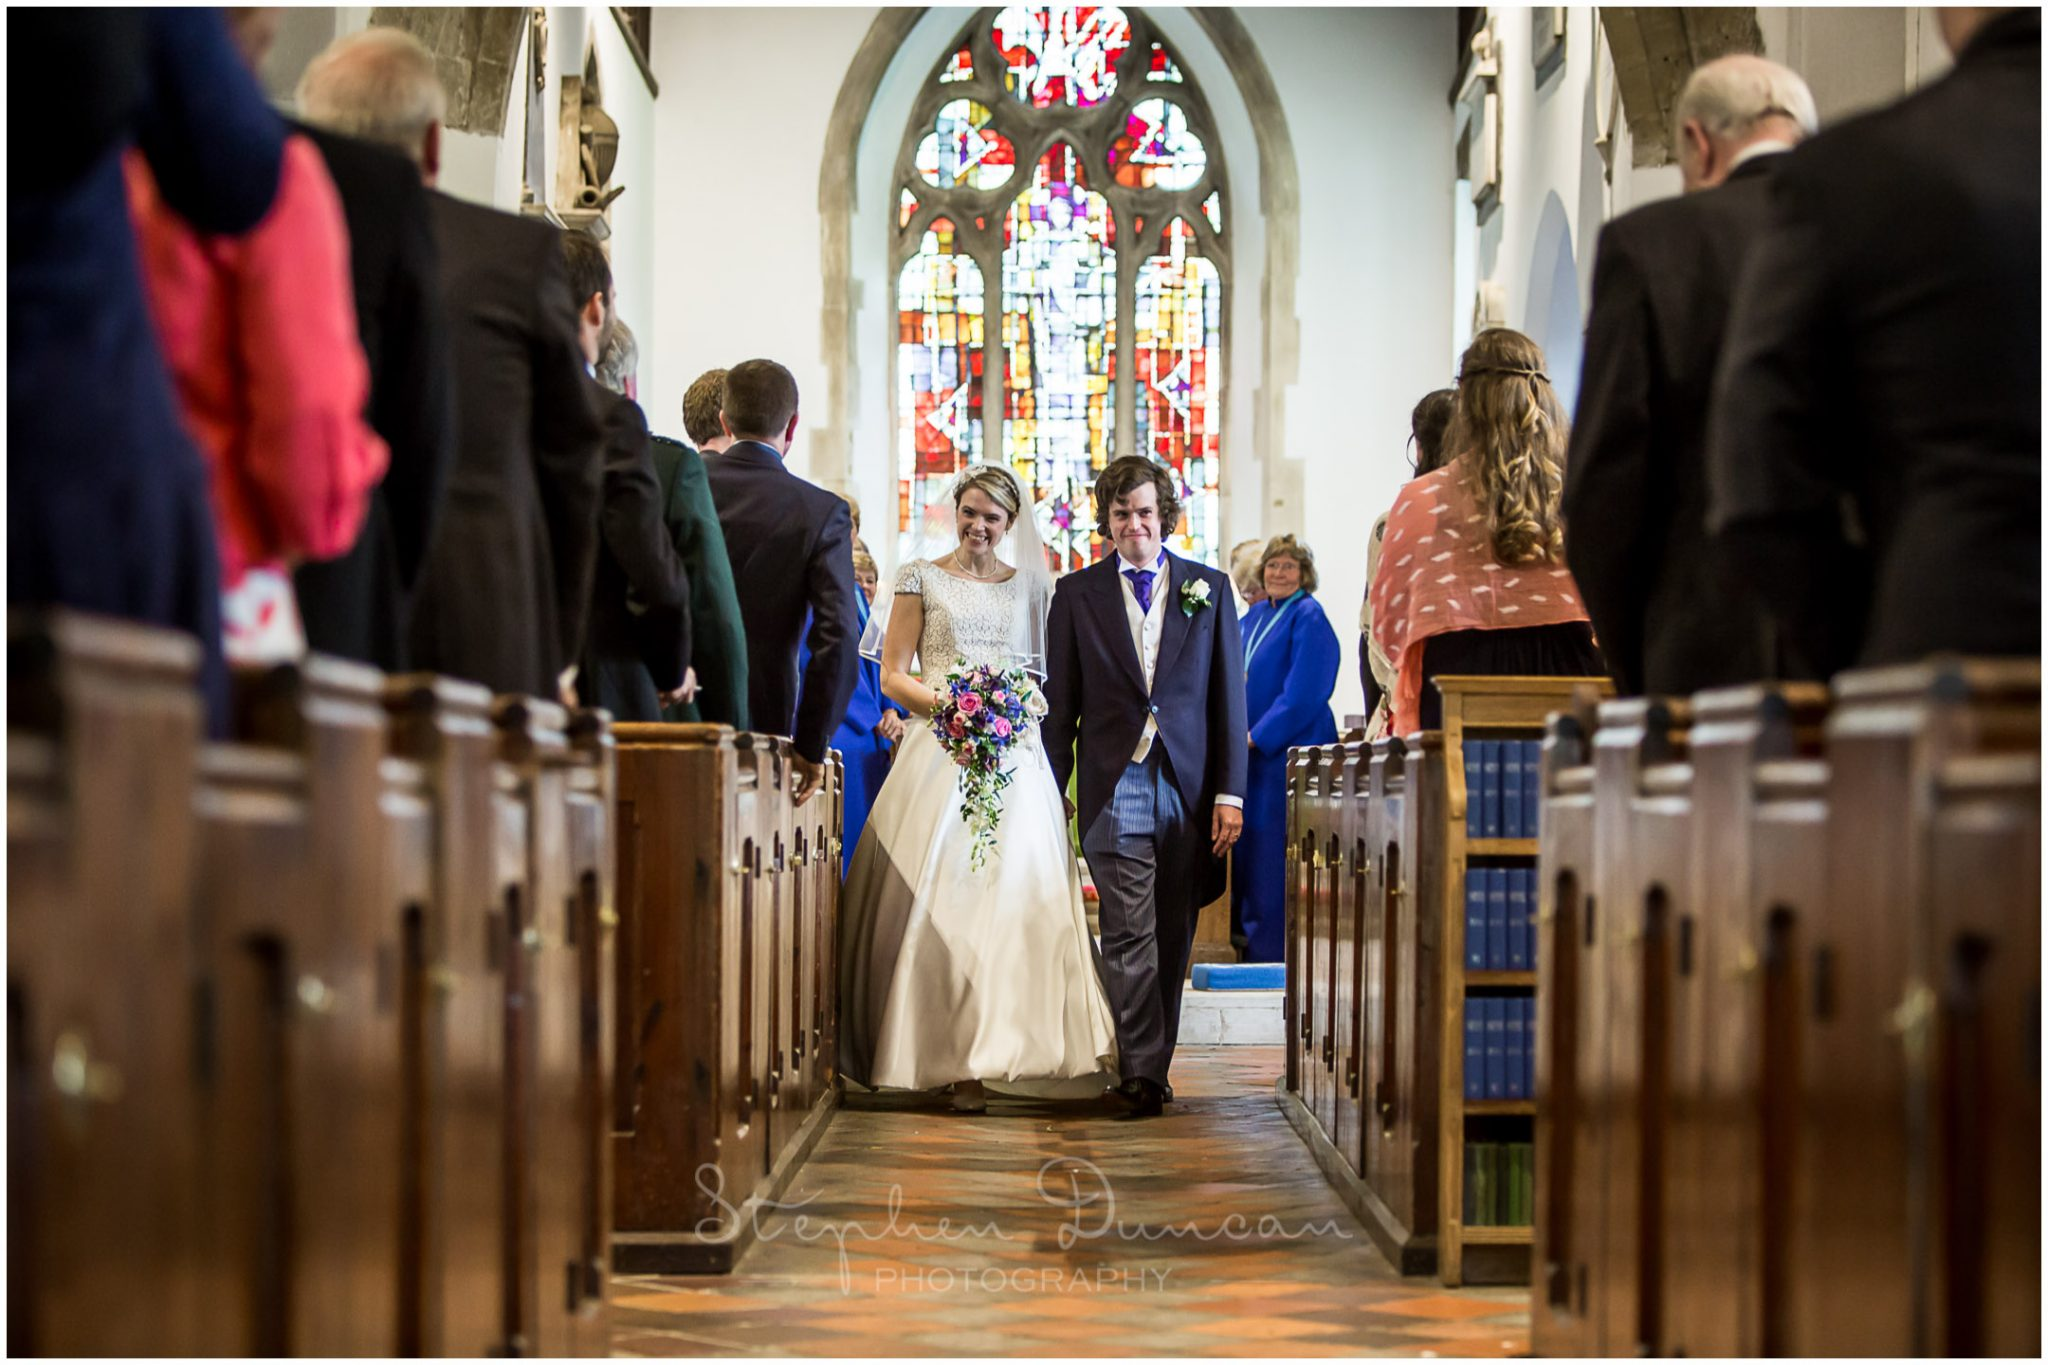 Lymington wedding photography bride and groom walk down aisle